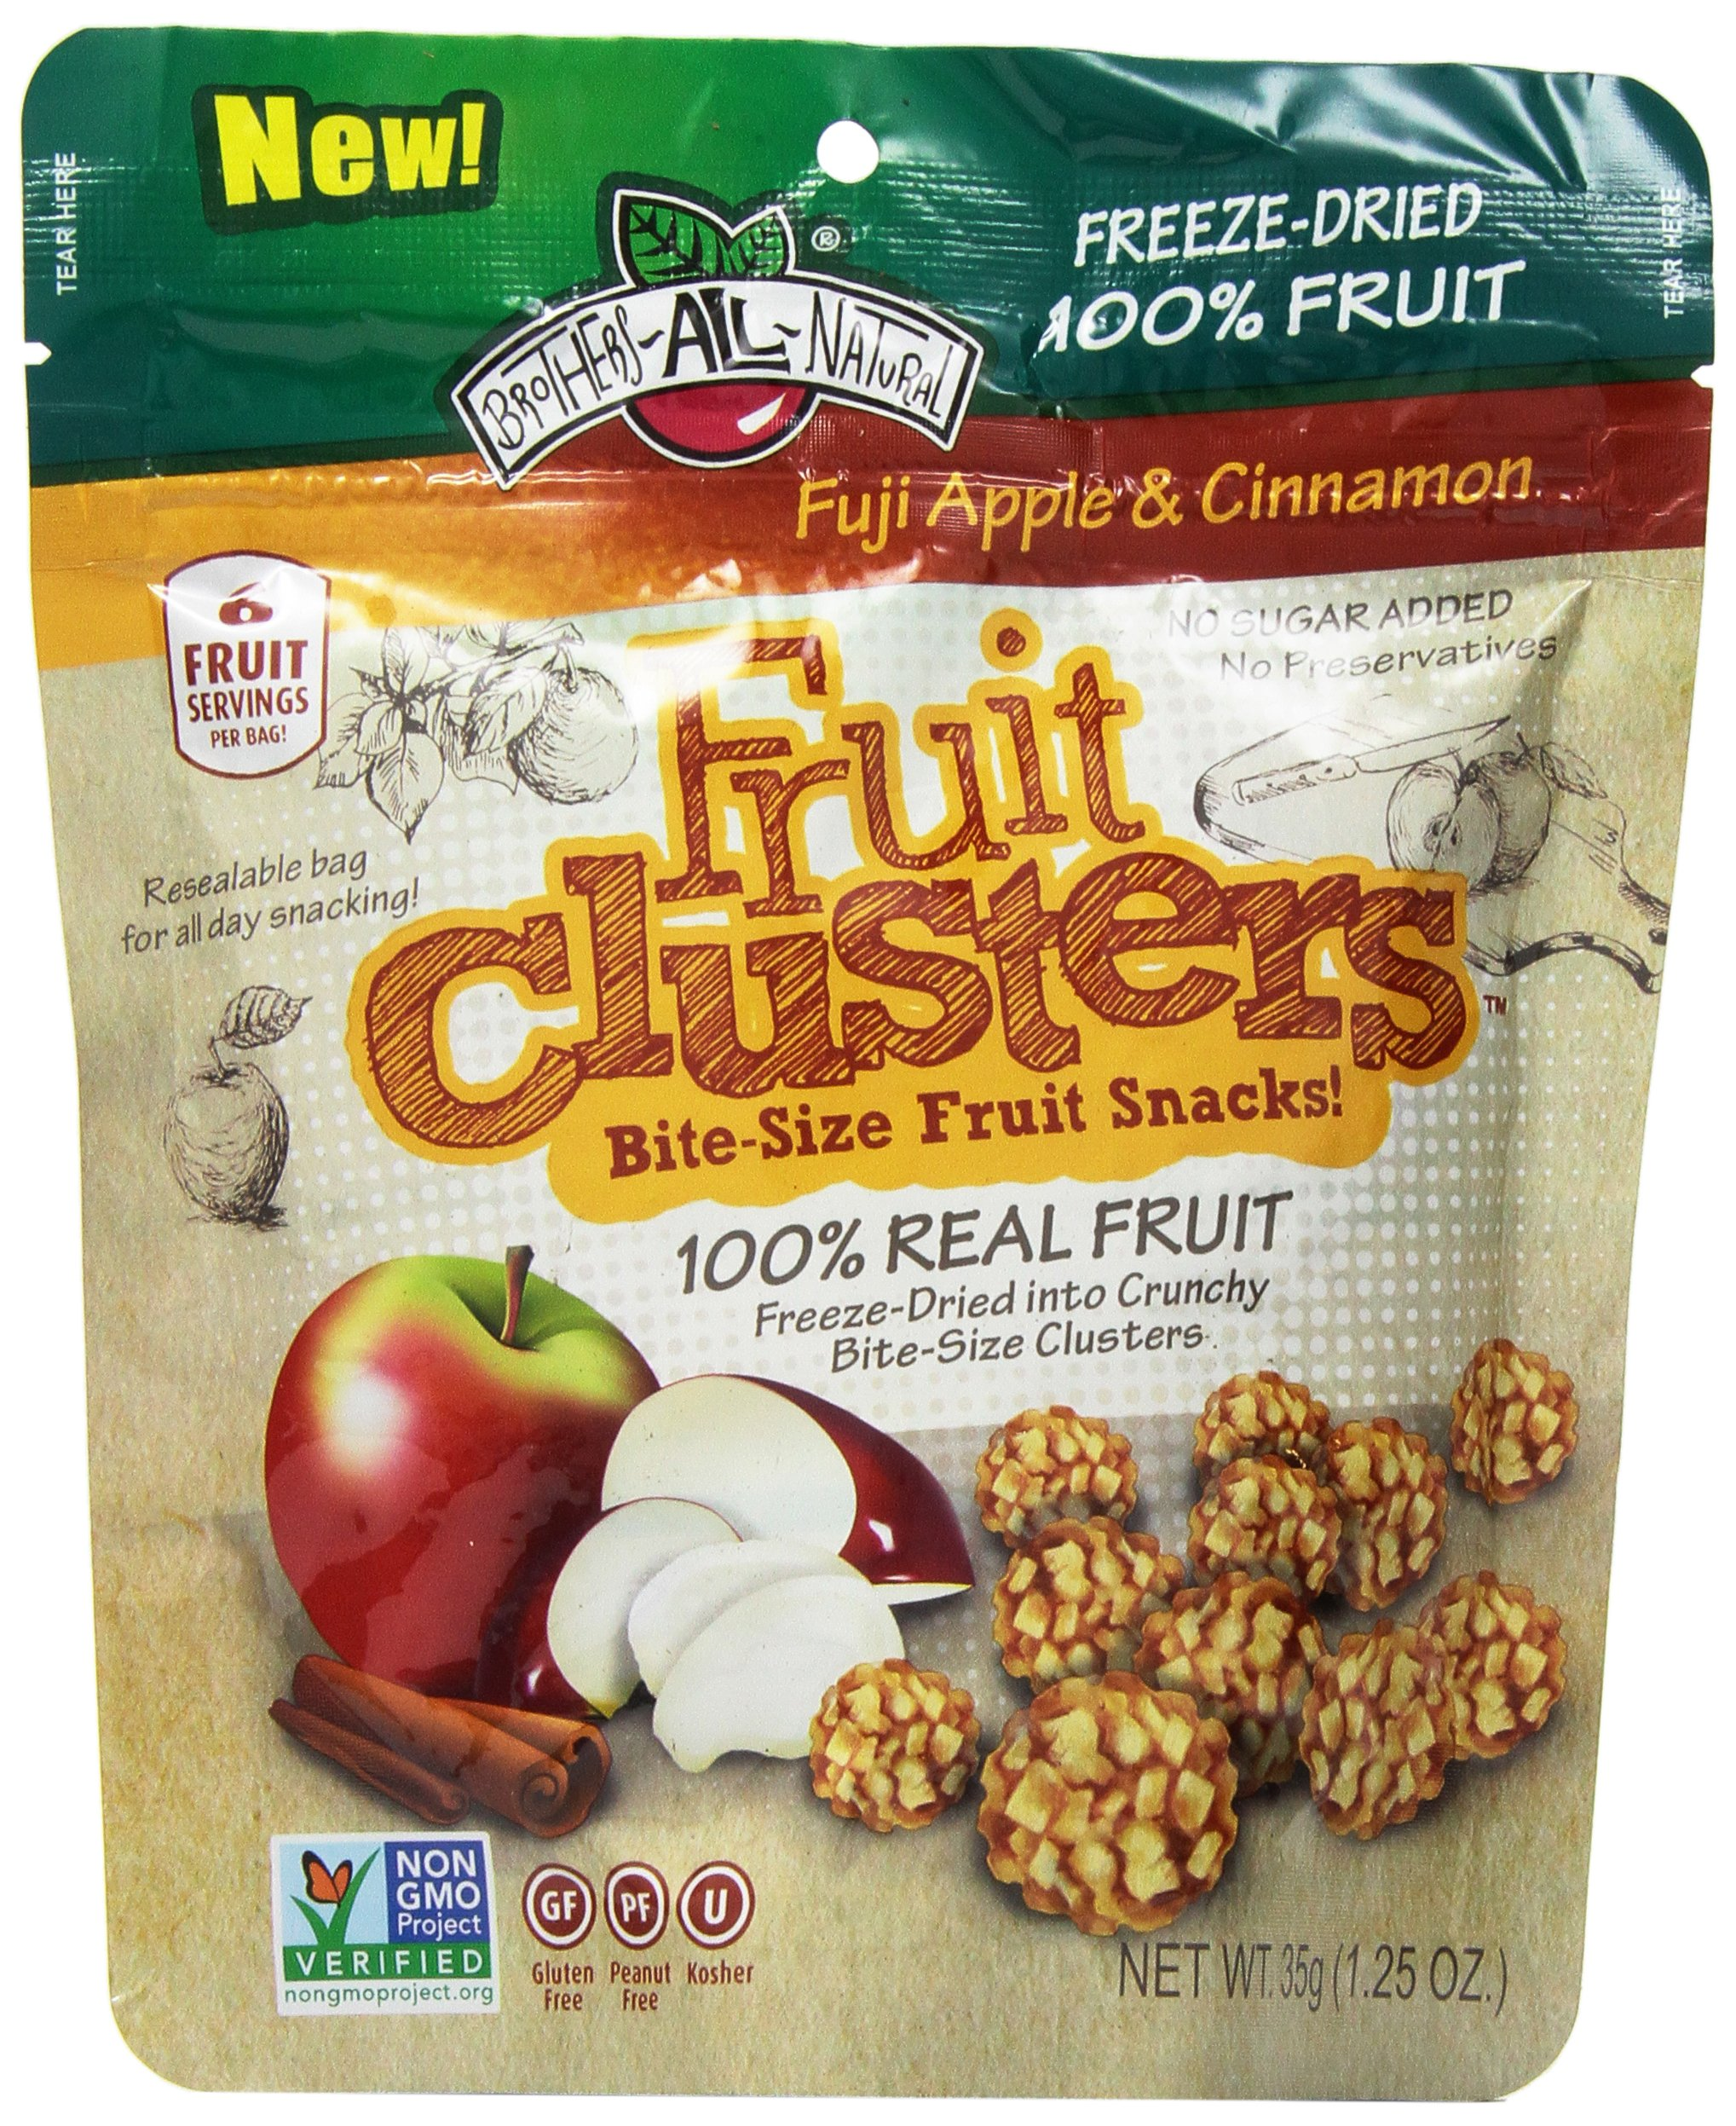 Brothers-ALL-Natural Fuji Apple & Cinnamon, 1.25 Ounce